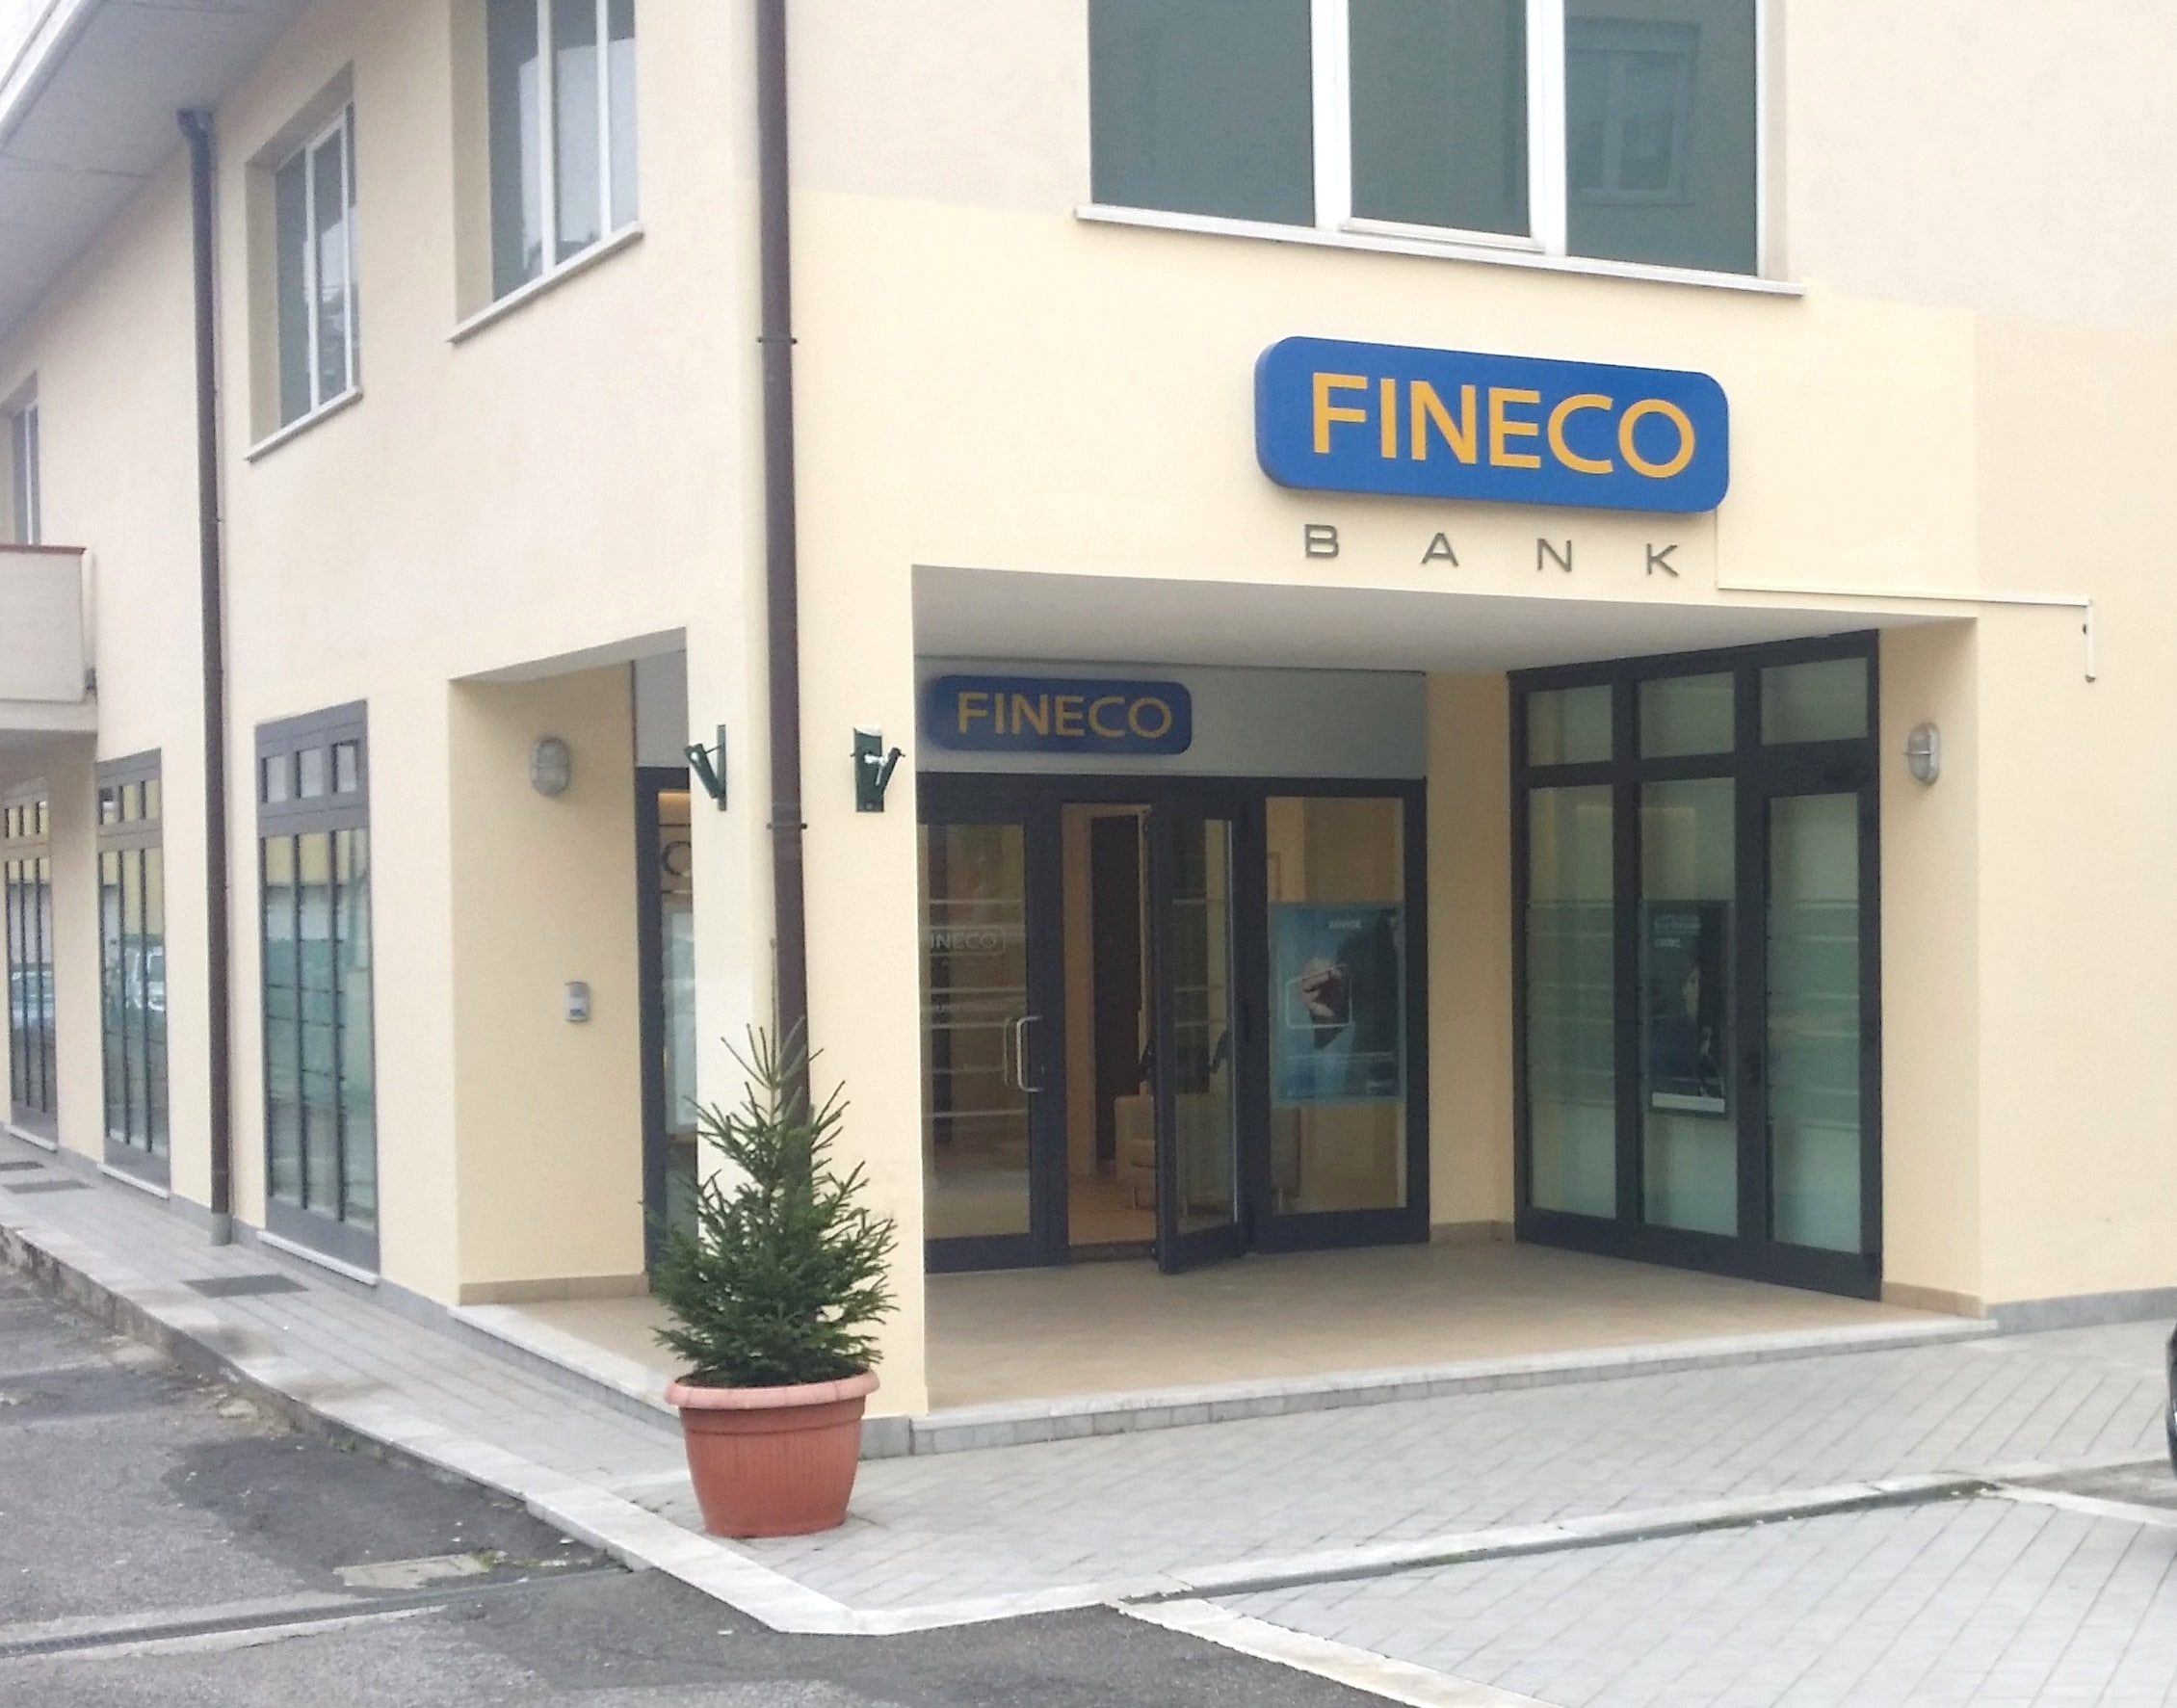 Photo of Fineco Center: nuova inaugurazione a Massa